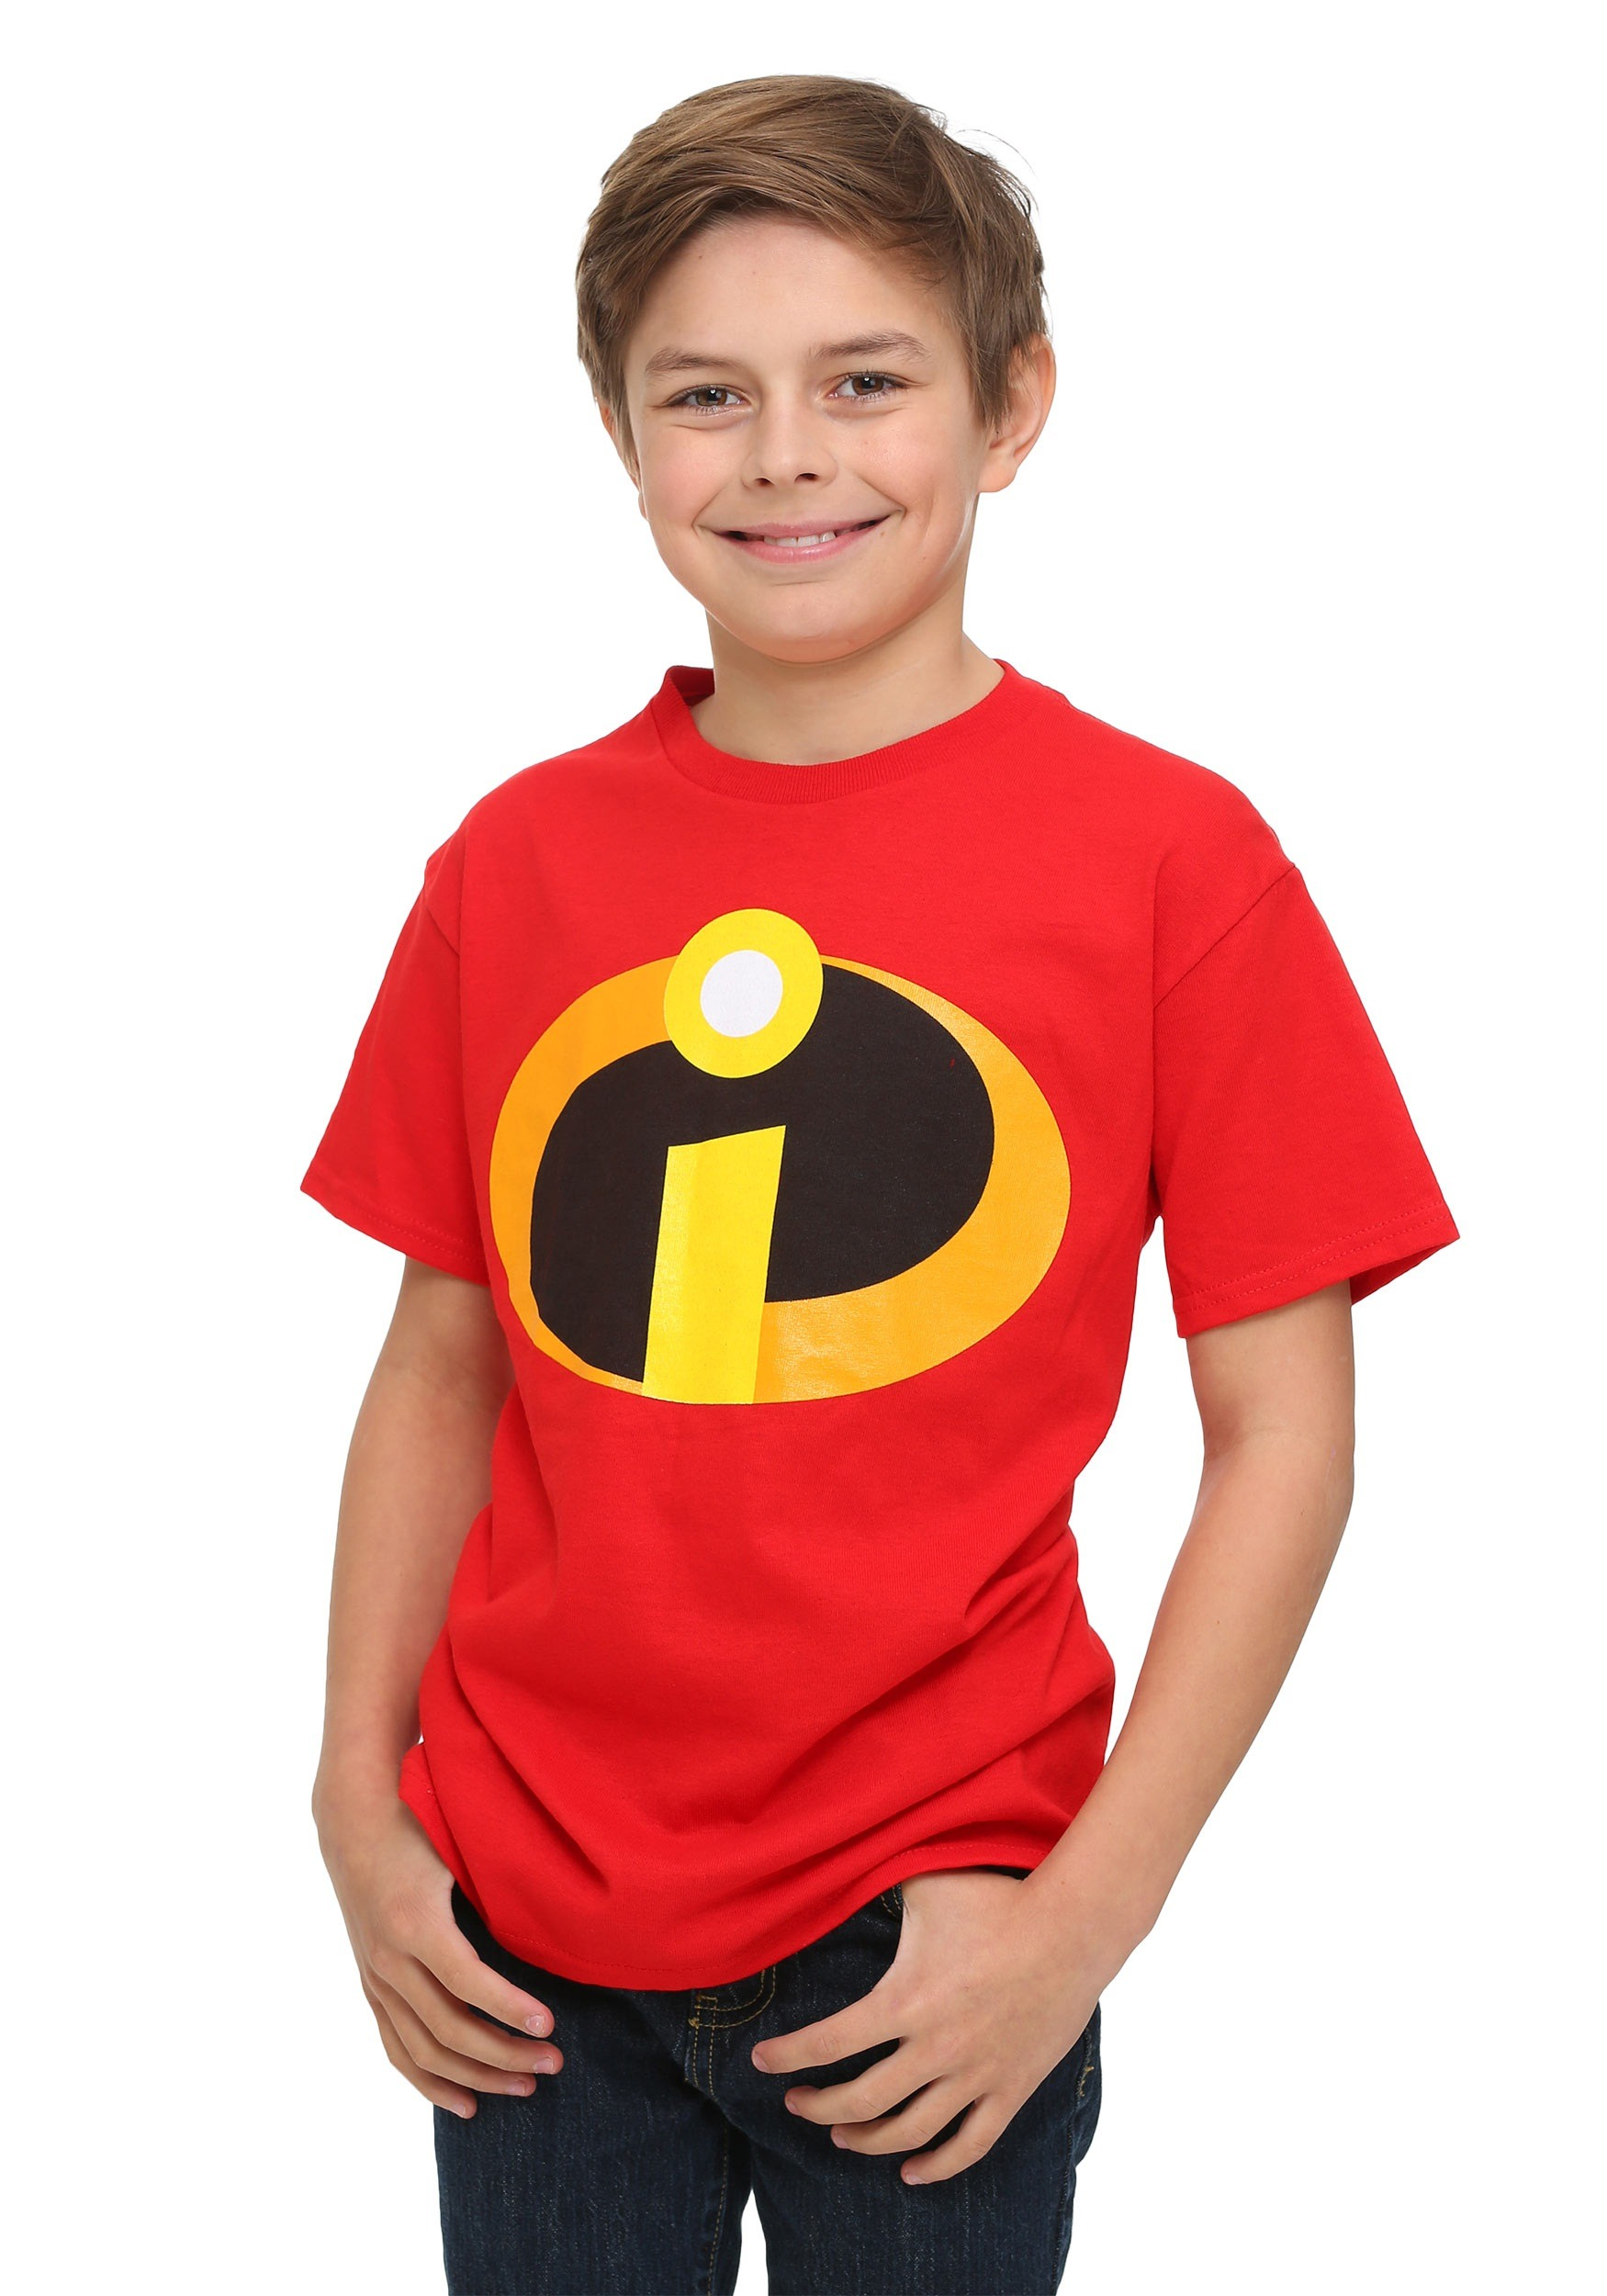 Boys incredibles costume tshirt for Costume t shirts online